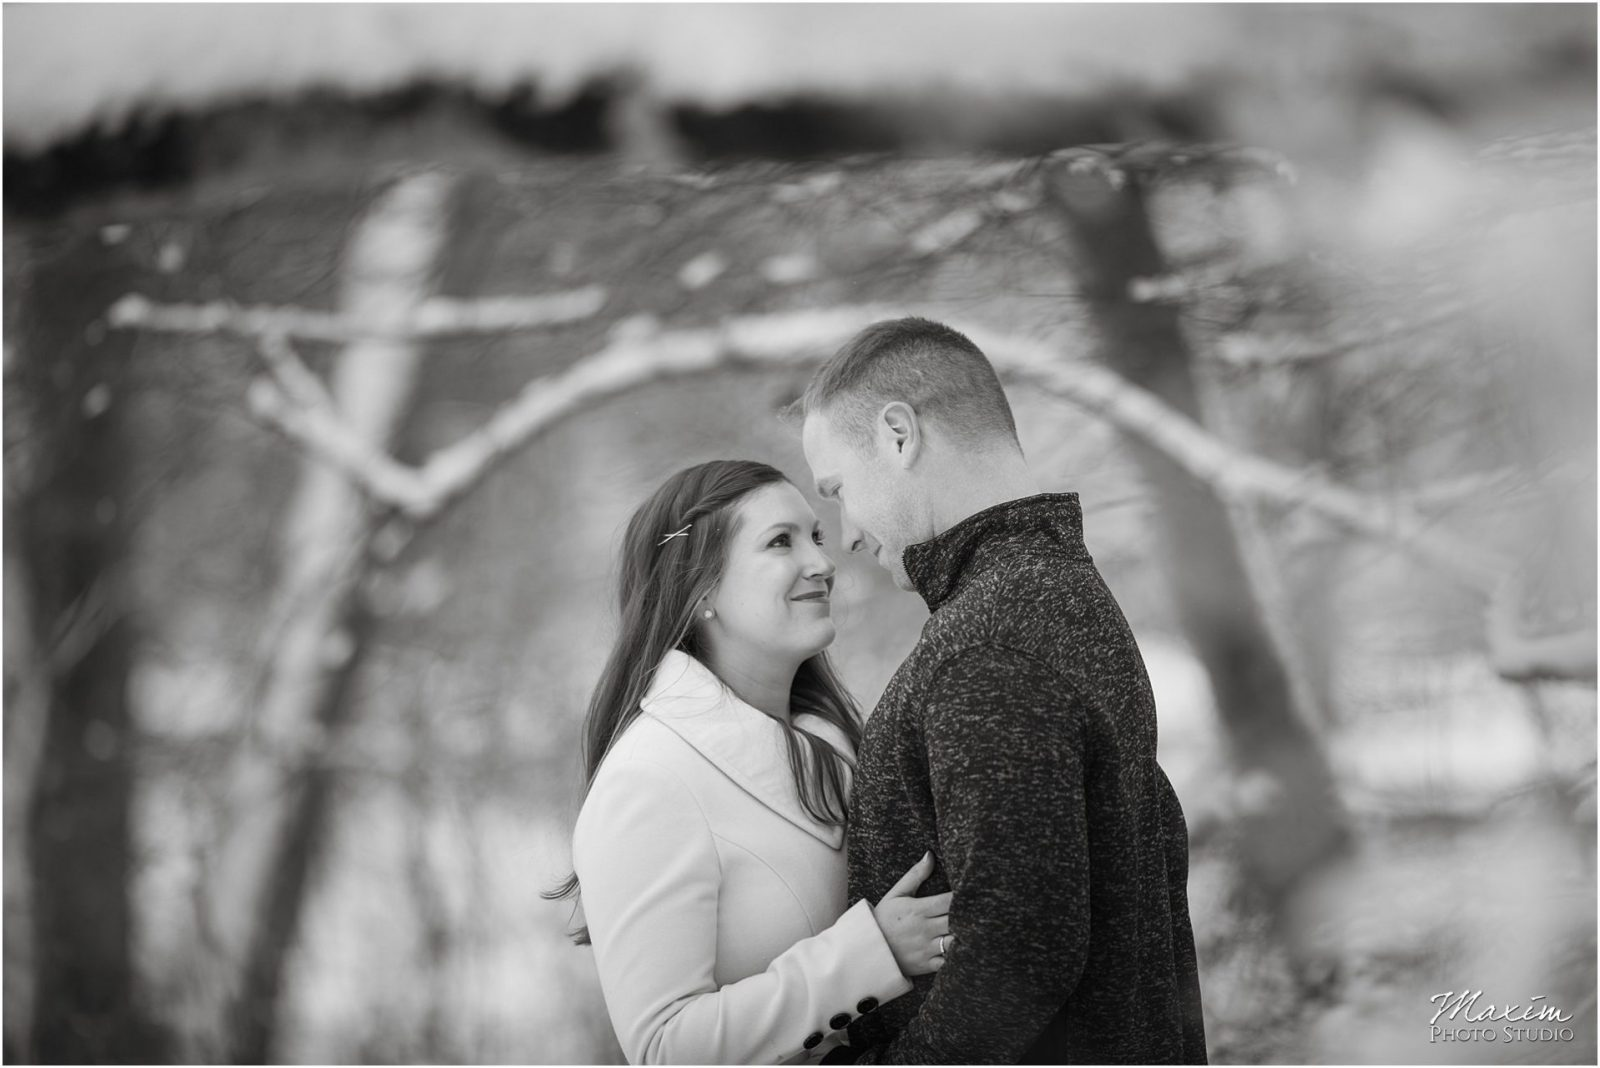 Ault Park Cincinnati Engagement, Snow Engagement, Cincinnati Wedding